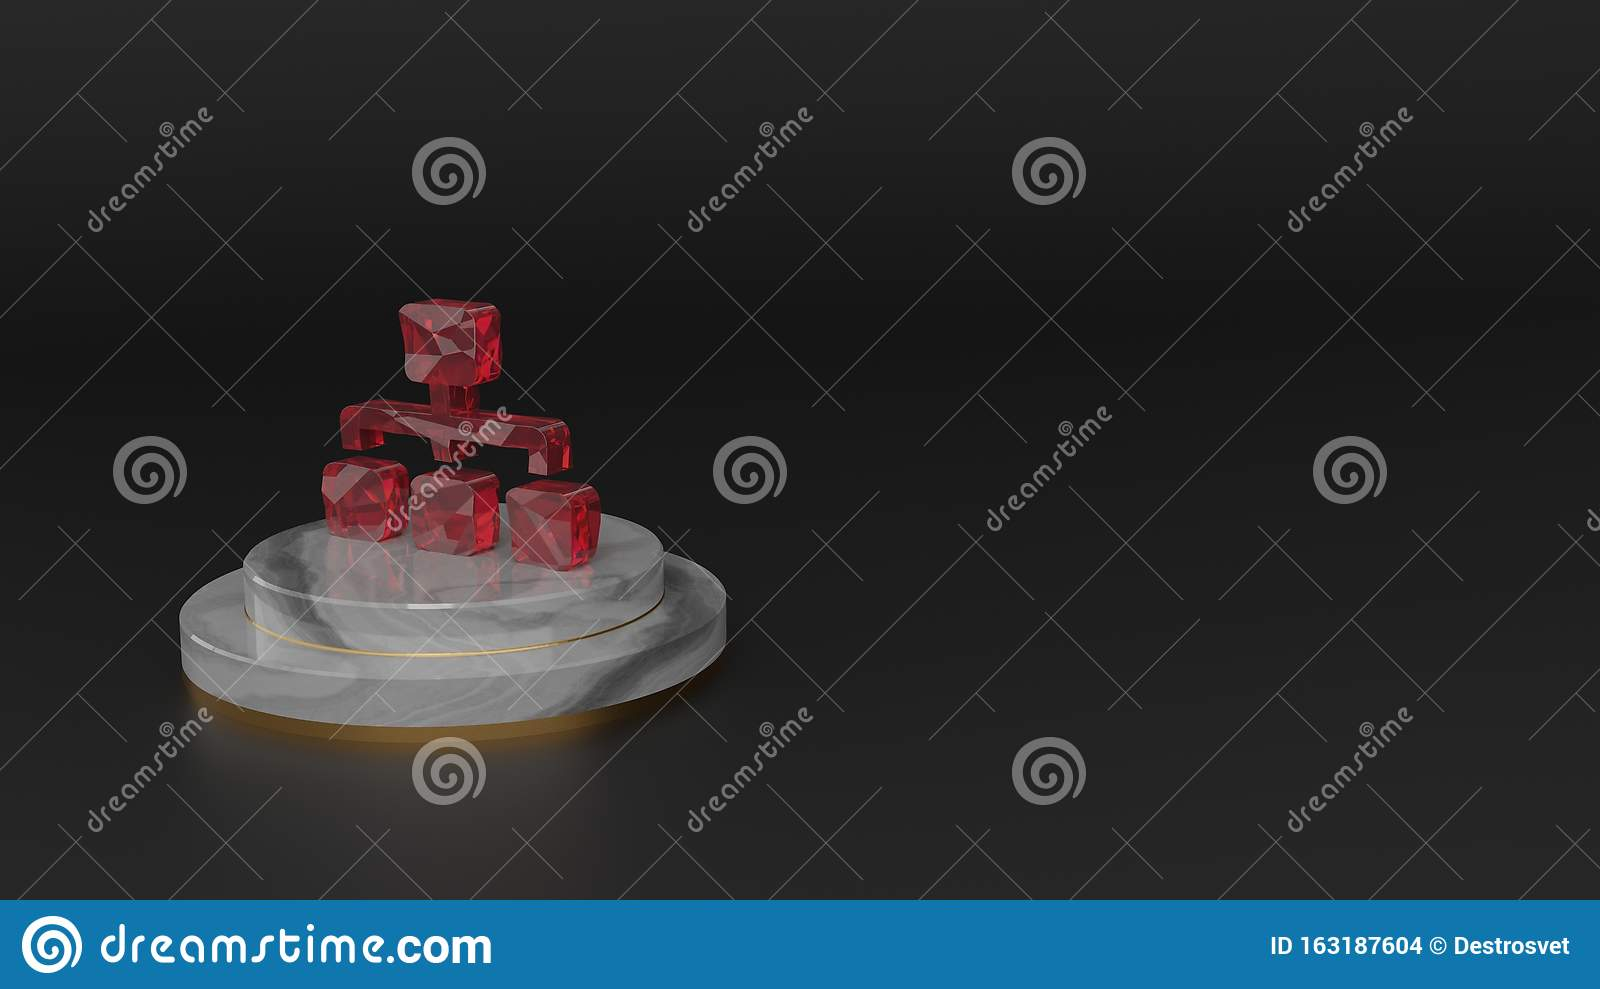 3D rendering of red gemstone symbol of sitemap icon